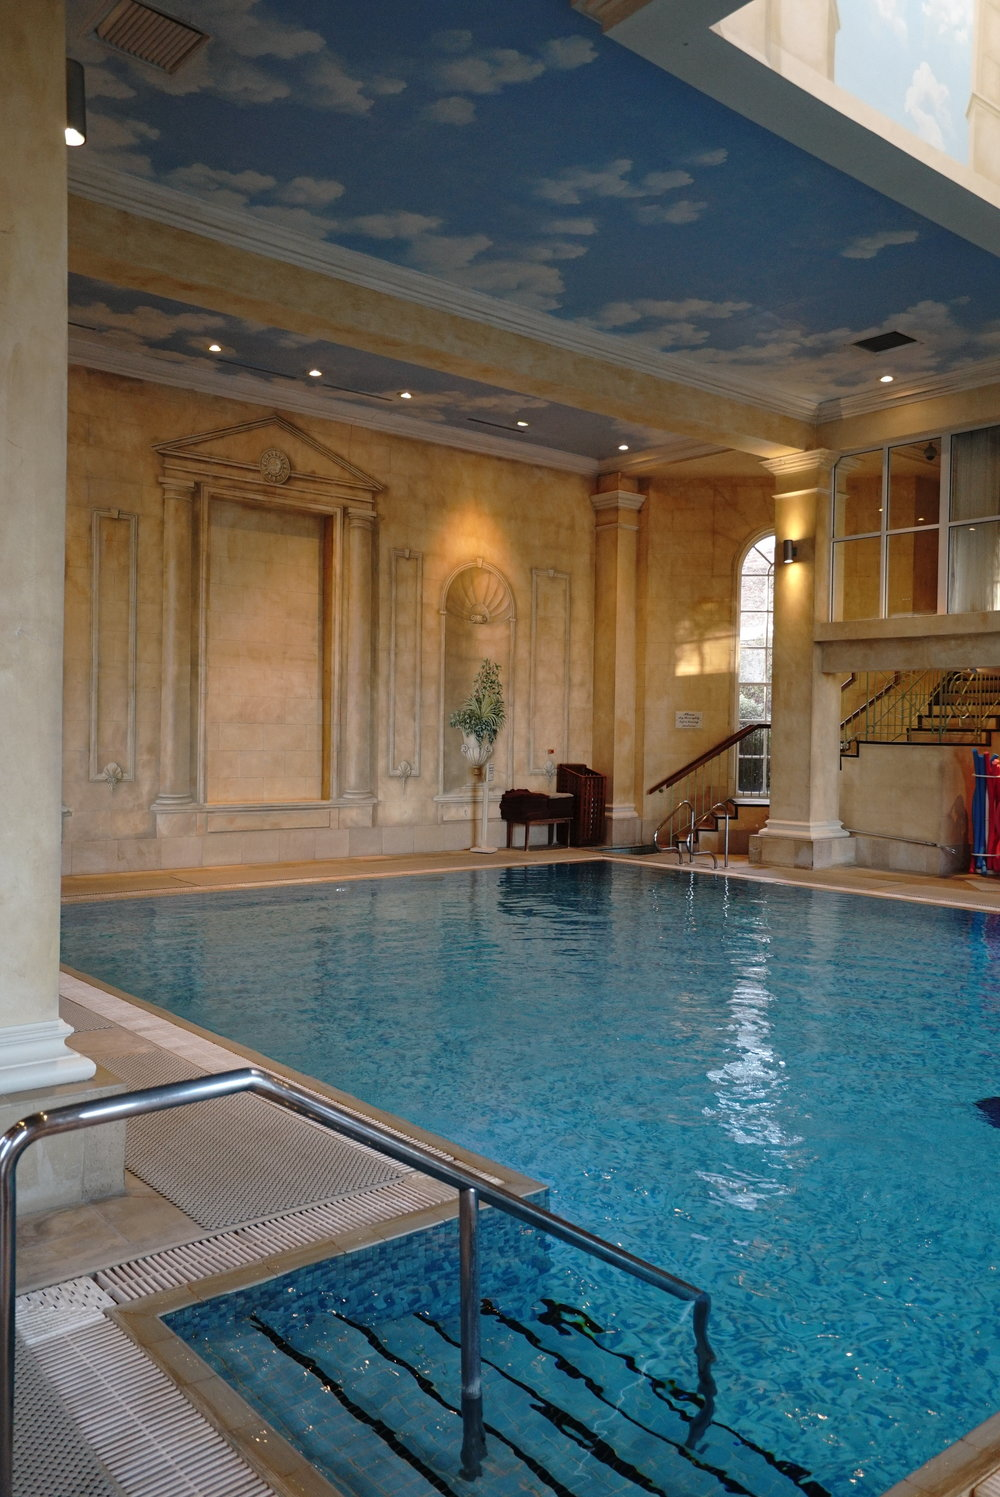 Chewton Glen Spa 1.JPG